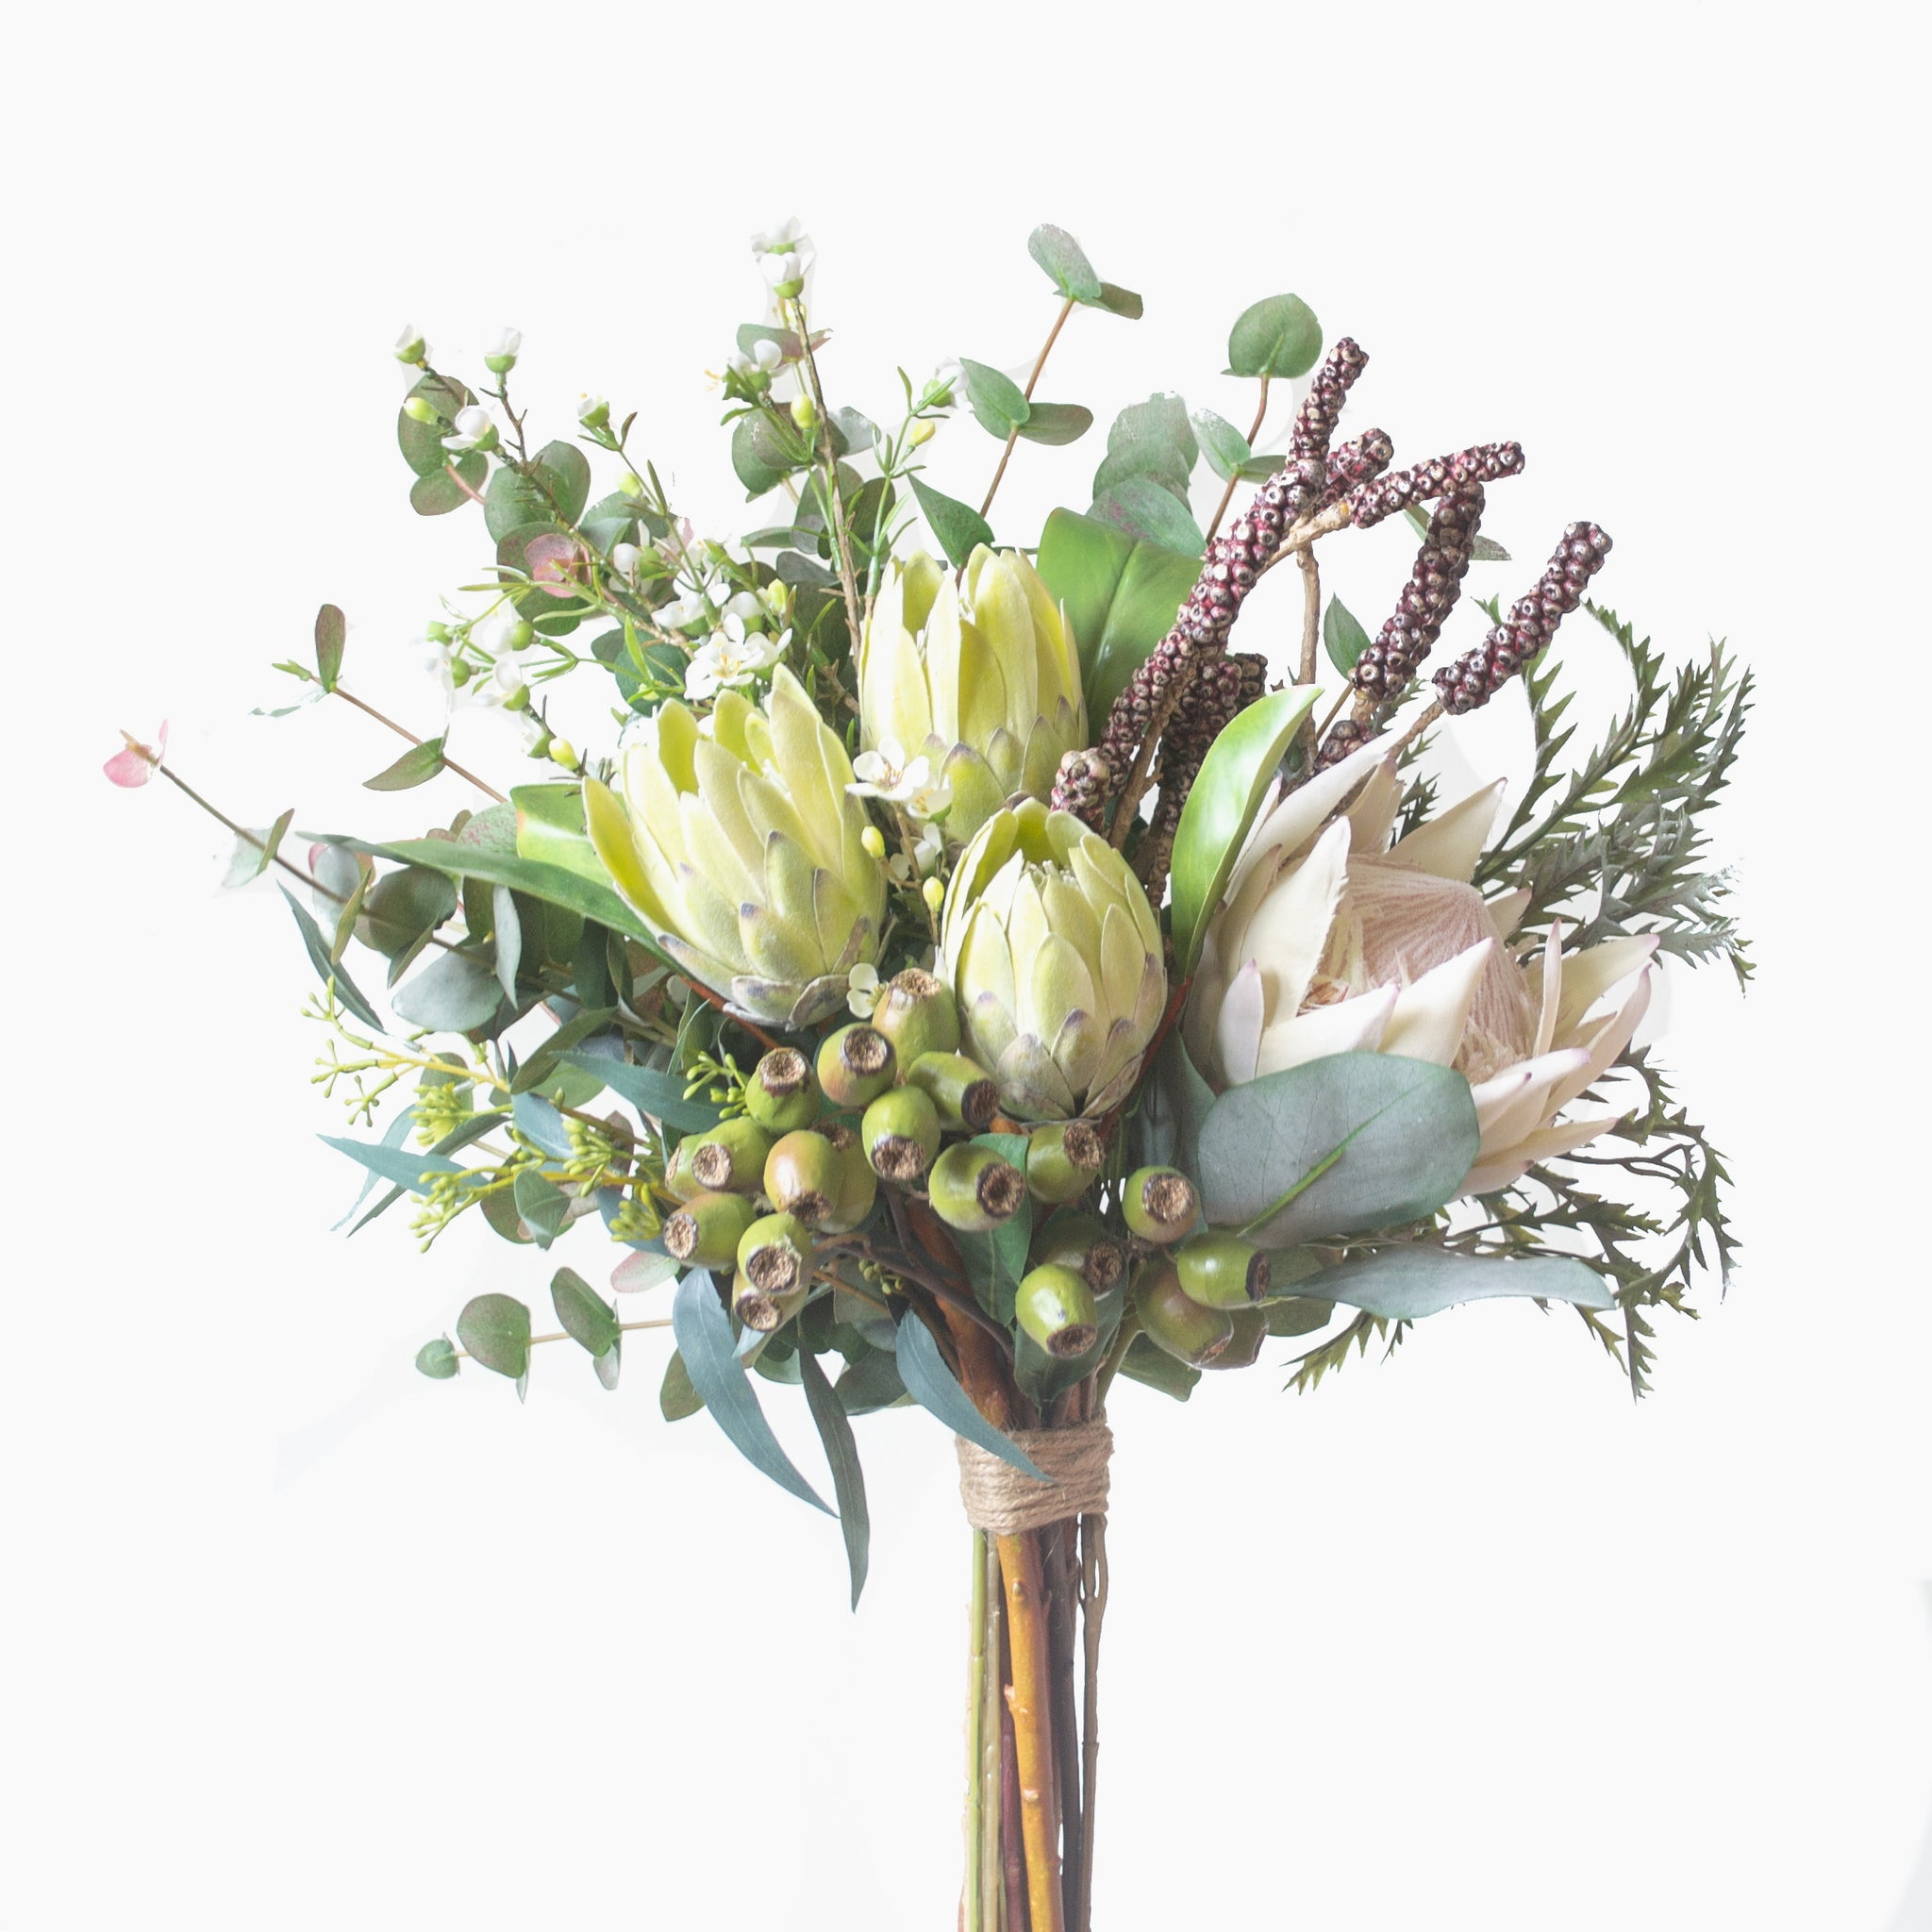 Cream and green protea, wax flower, bottlebrush pods and mixed native foliages